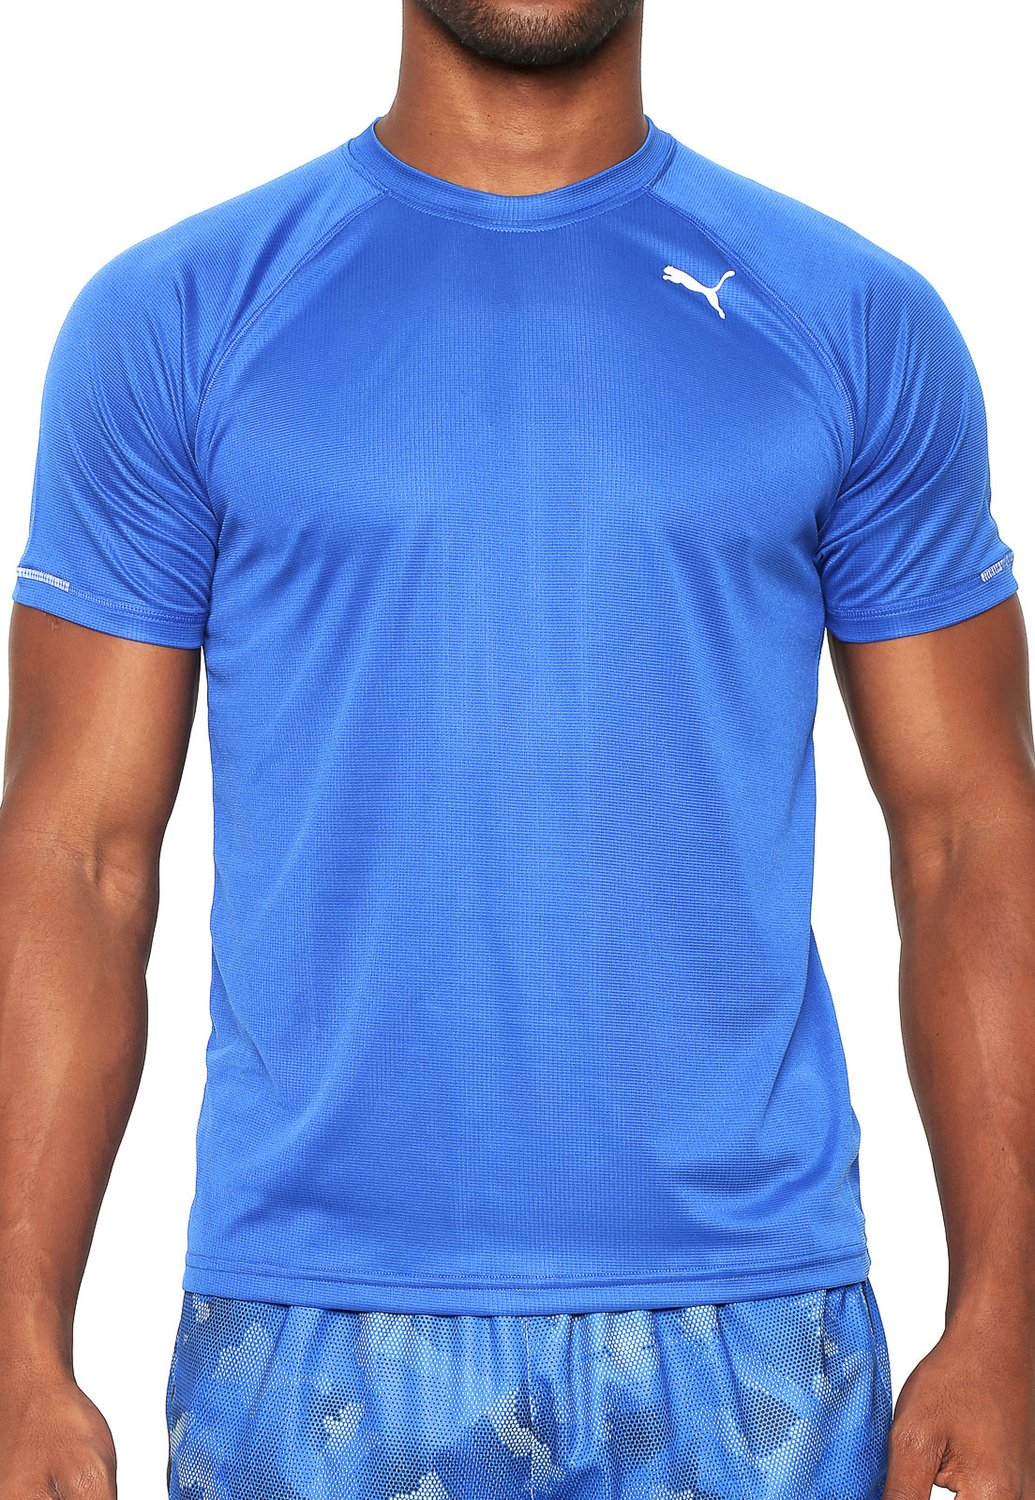 70e28facbc CAMISETA PUMA CORE RUN TEE MASCULINA 51590812 - Polissport